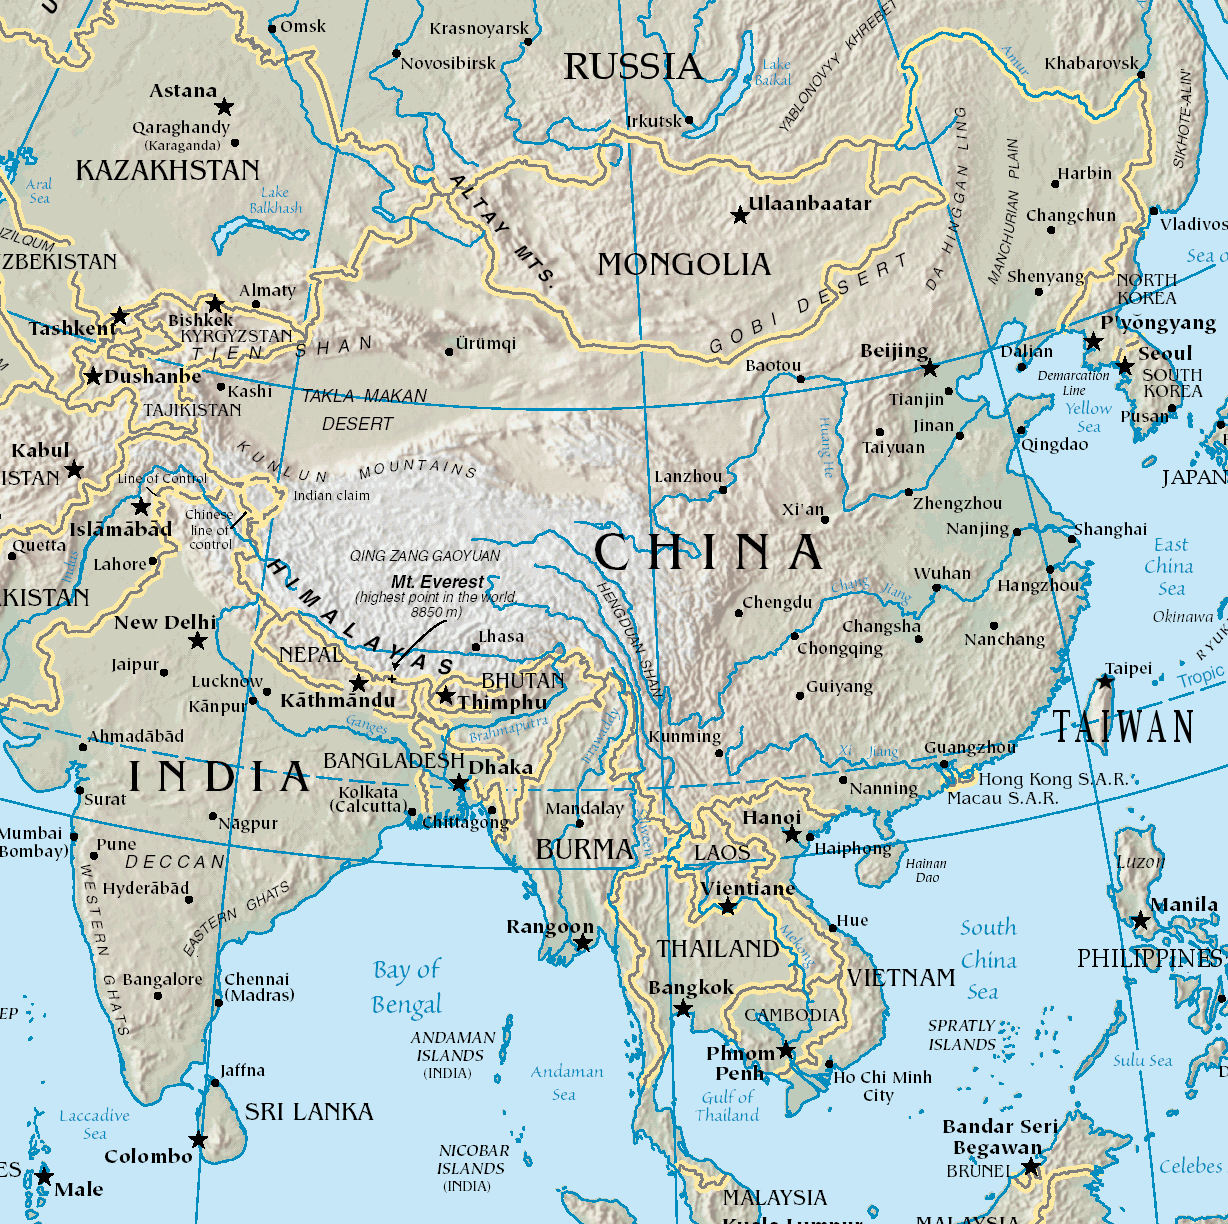 Karte China.Map Of China Physical Map Worldofmaps Net Online Maps And